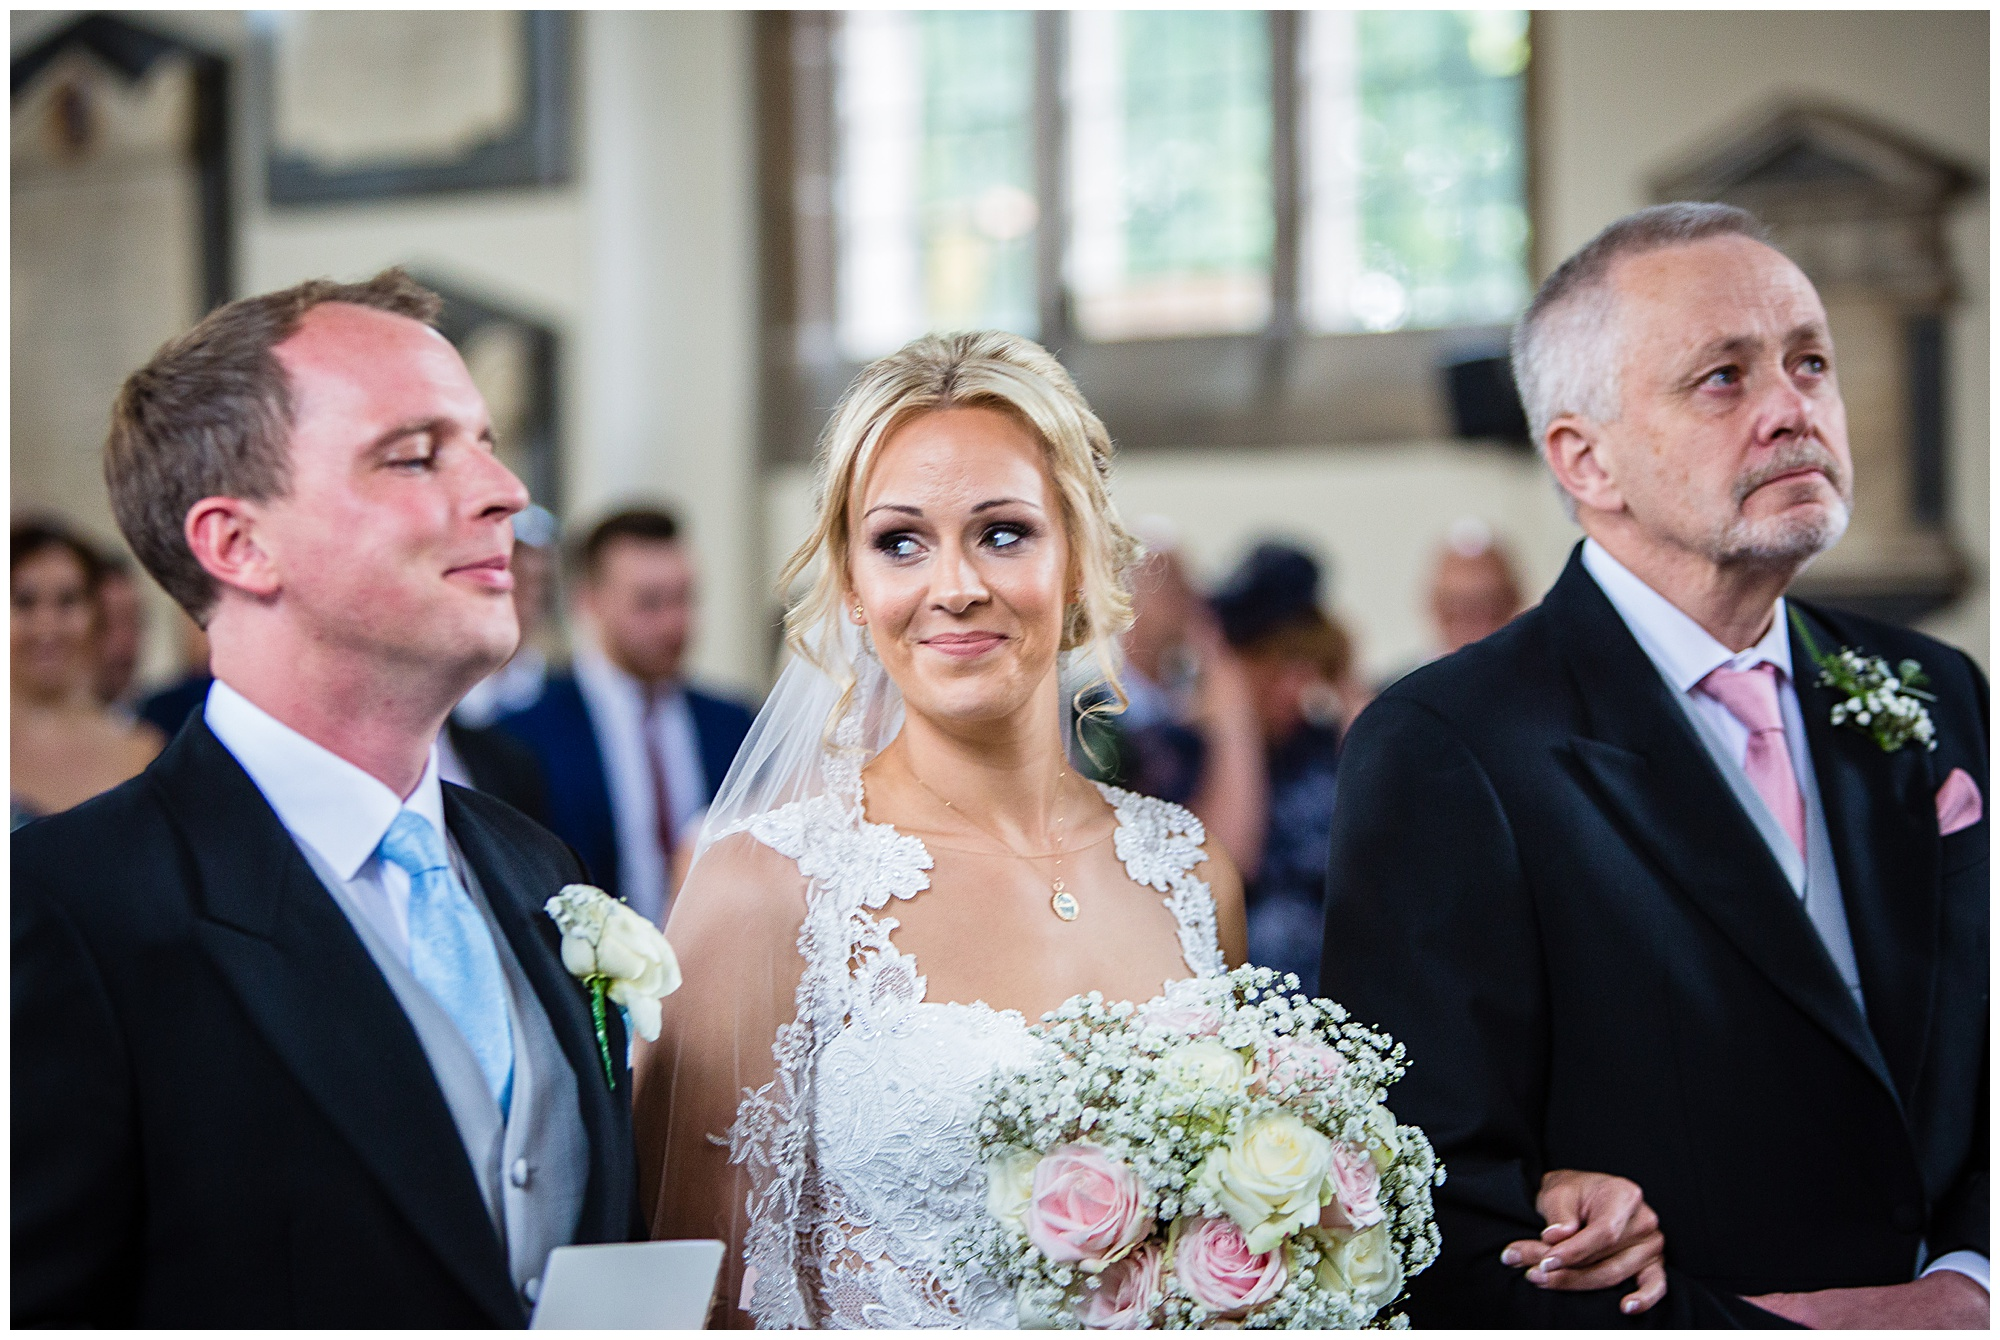 very happy bride looking at husband to be - very excited!